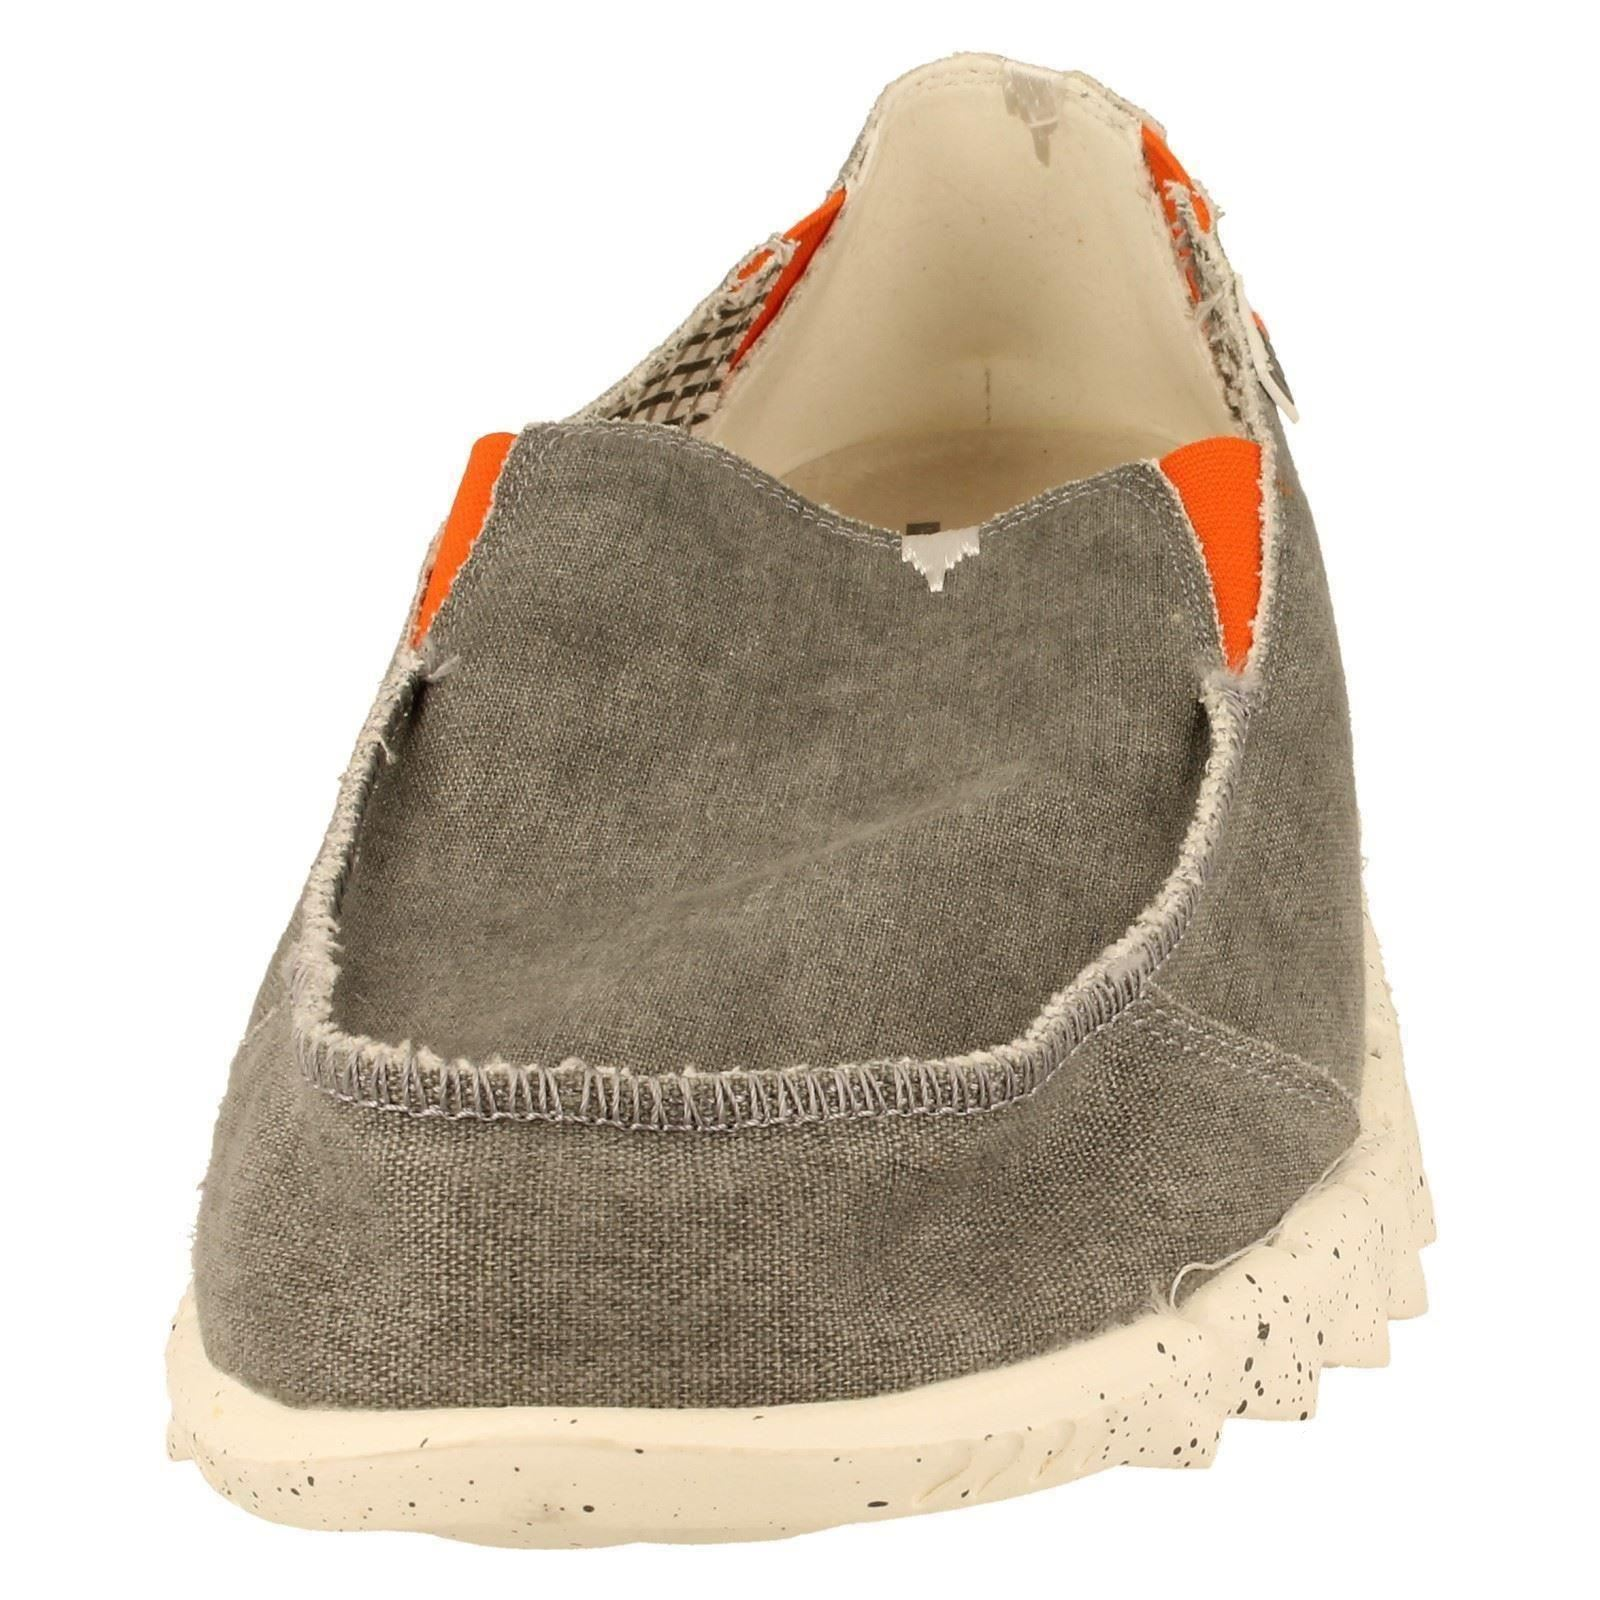 Uomo Hey Dude Lightweight Canvas Schuhes Schuhes Canvas Style Farty Funk -W 6eda4a